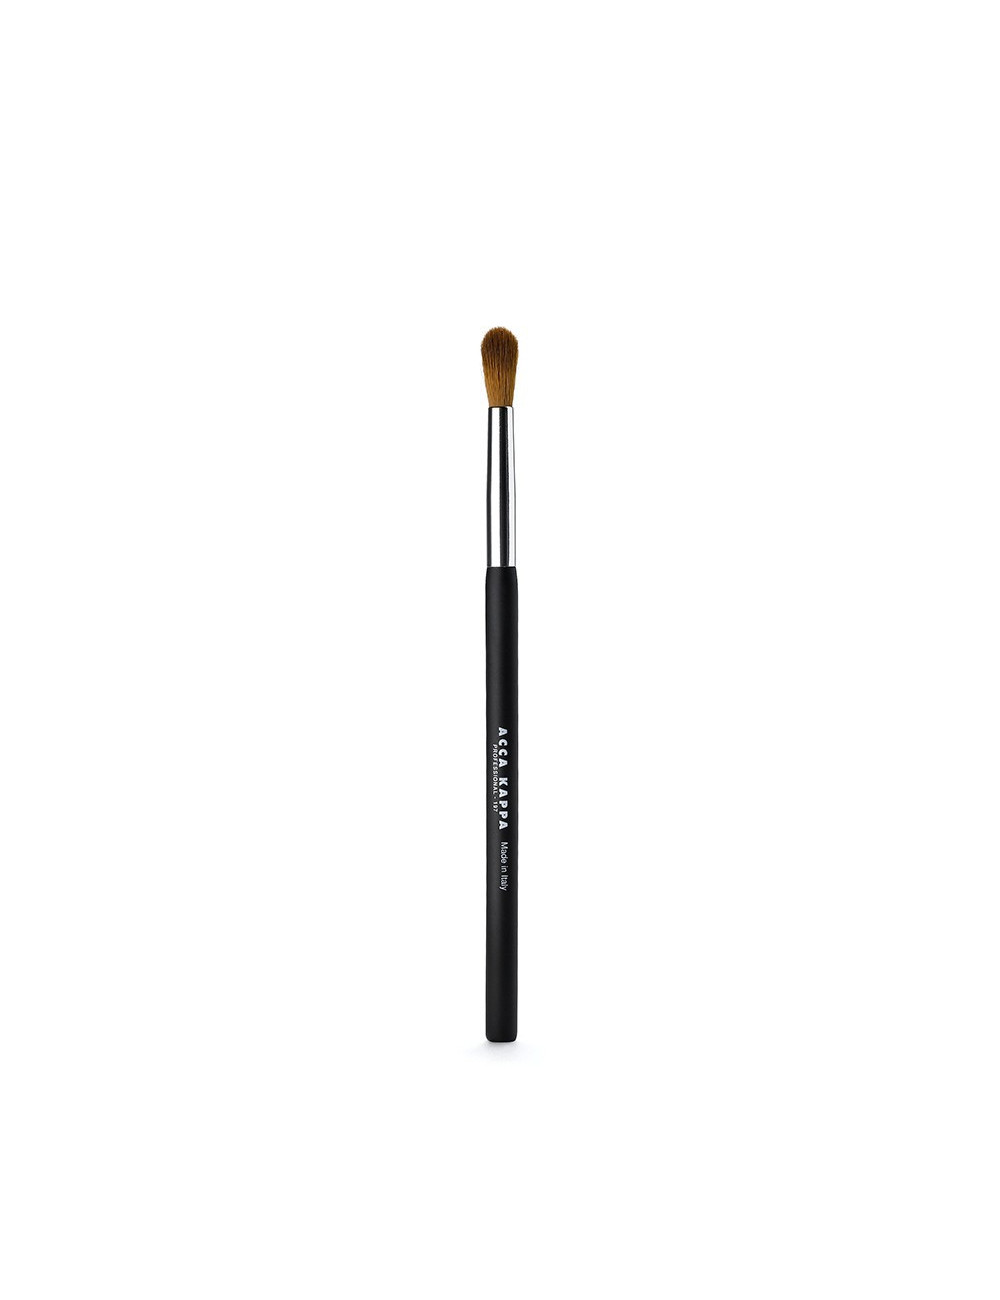 DAY FACE - PRO MAKEUP CASE PROFUSION